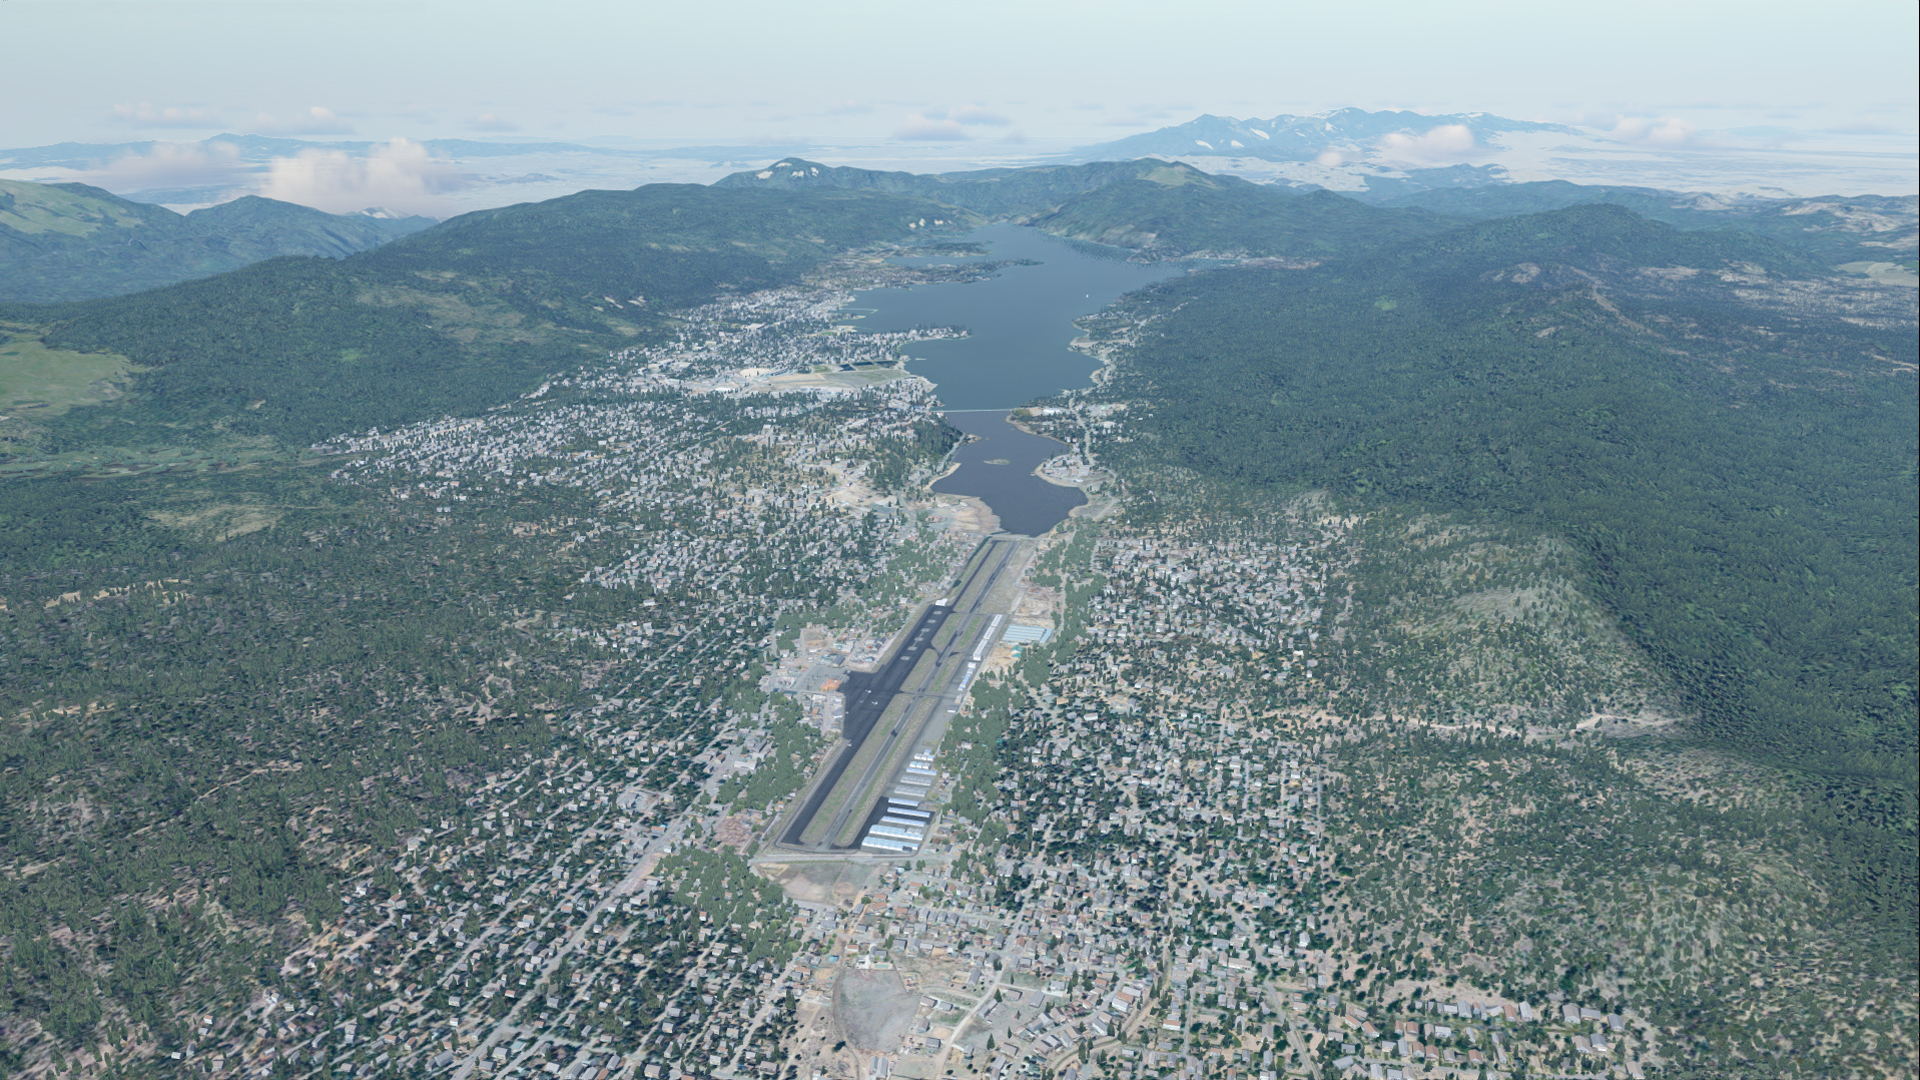 Dovetail games flight school manual - The First Add On Scenery Is Now Available For Flight Sim World Big Bear Features Highly Detailed Buildings An Accurate Ground Poly And Utilizes